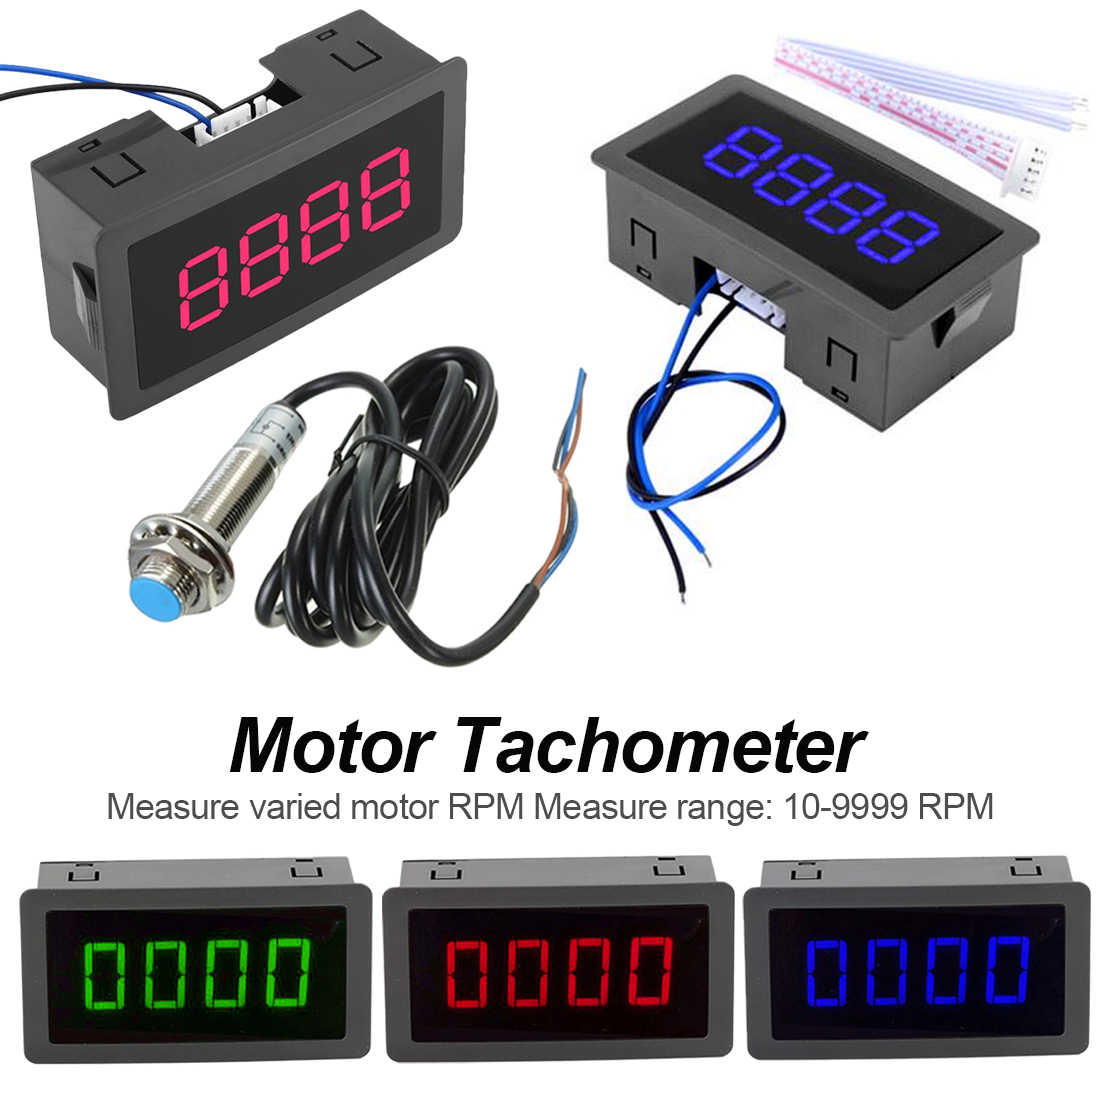 RPM Tachometer Counter 4 Digit Tachometer With Hall Switch Proximity Switch Sensor 12V Measure Range 10-9999RPM